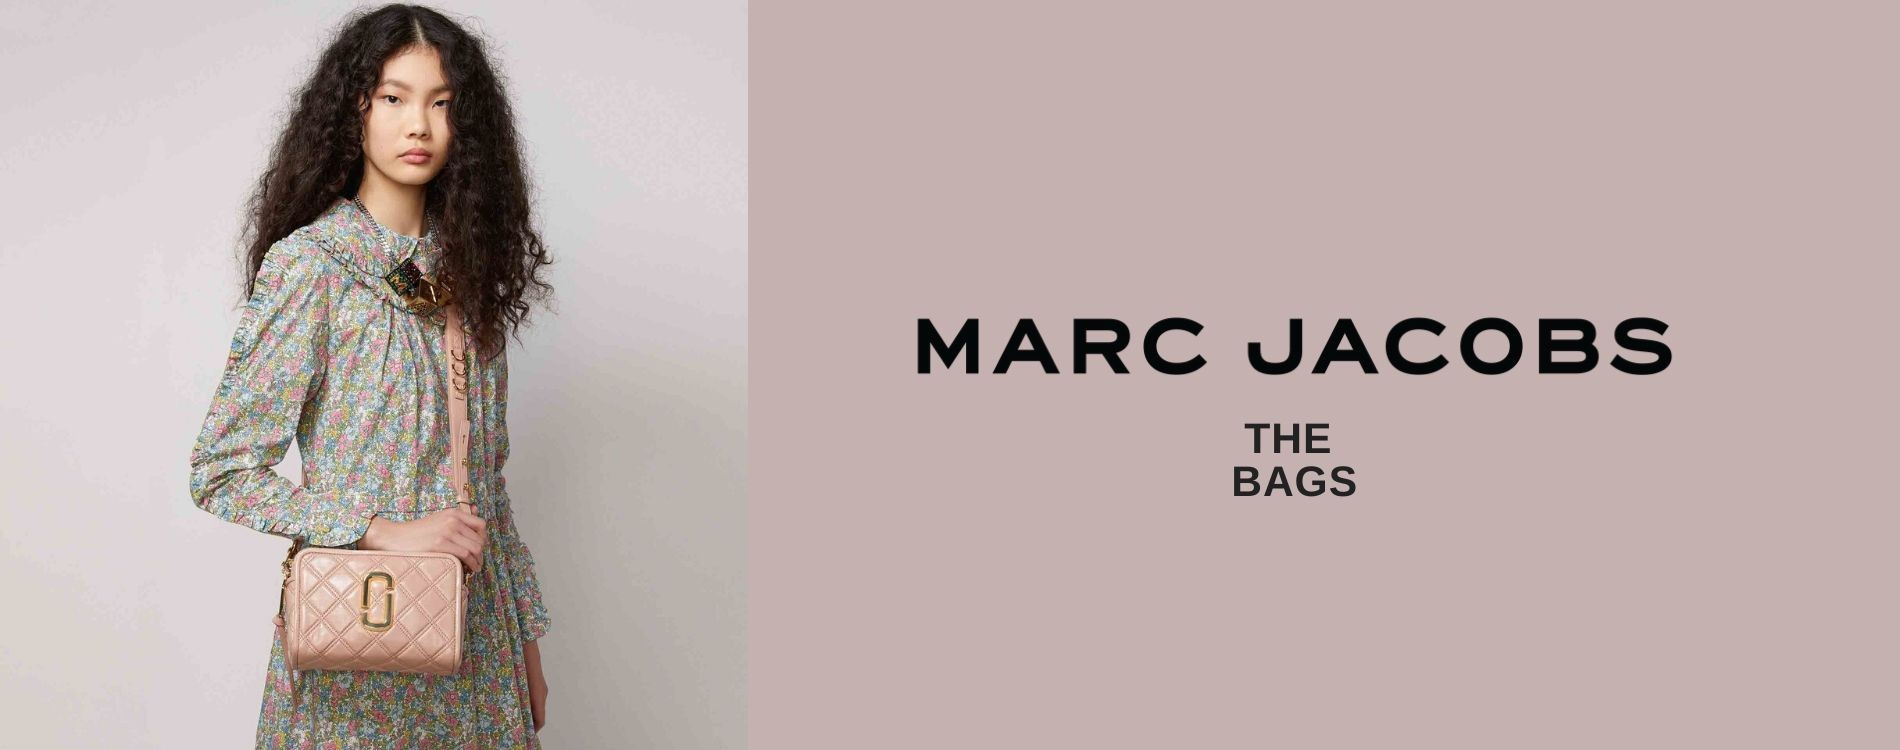 MARC JACOBS NEW COLLECTION